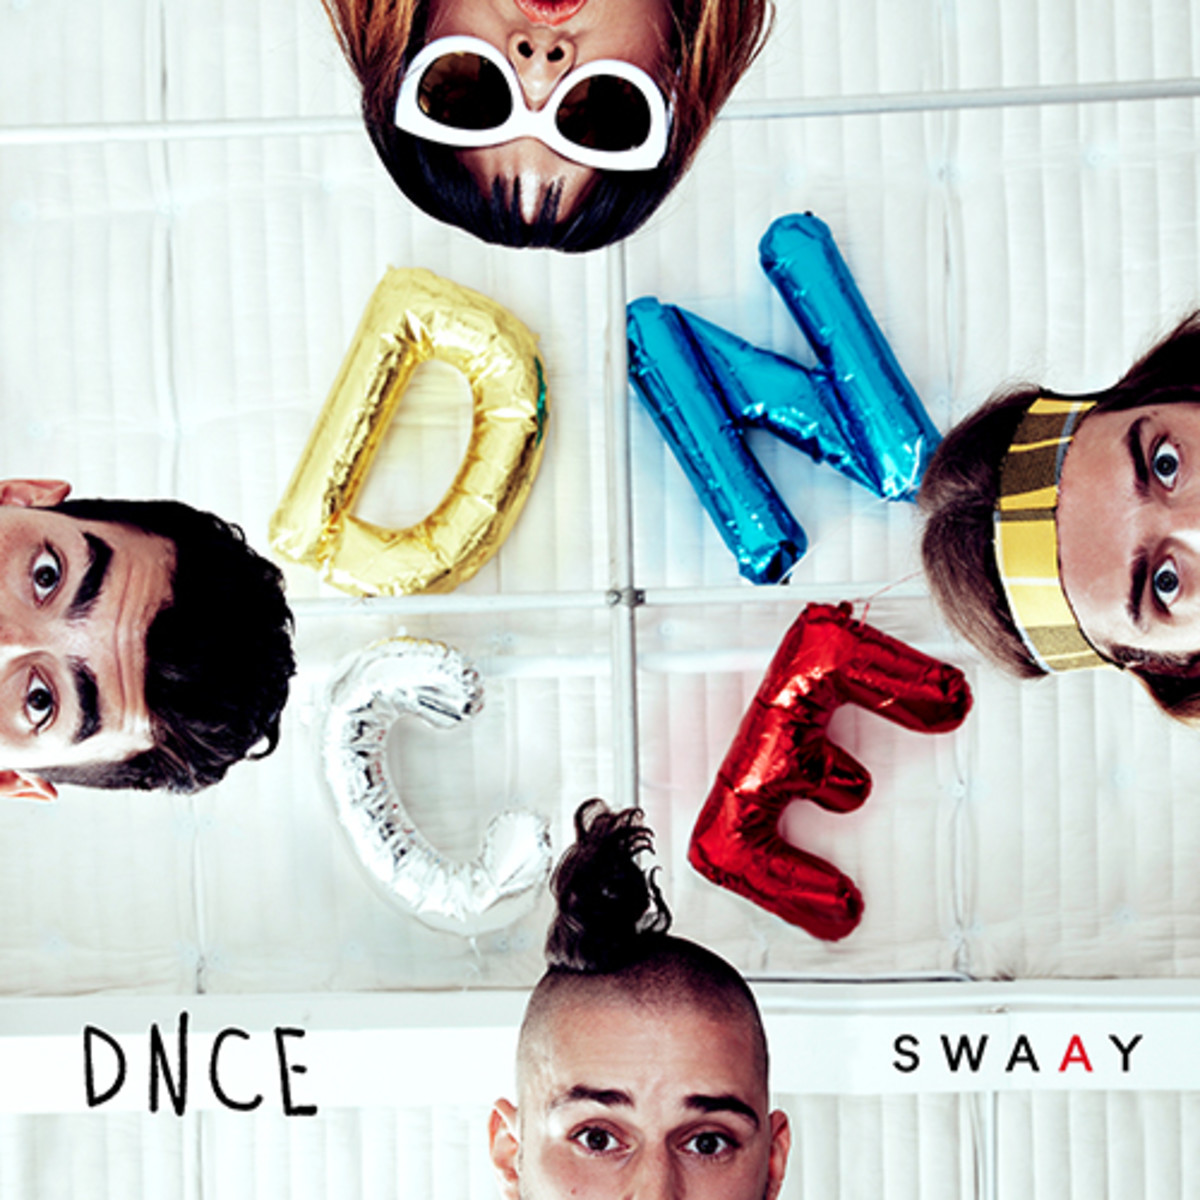 #WHHSH & the Music Lounge will have a special live performance by DNCE